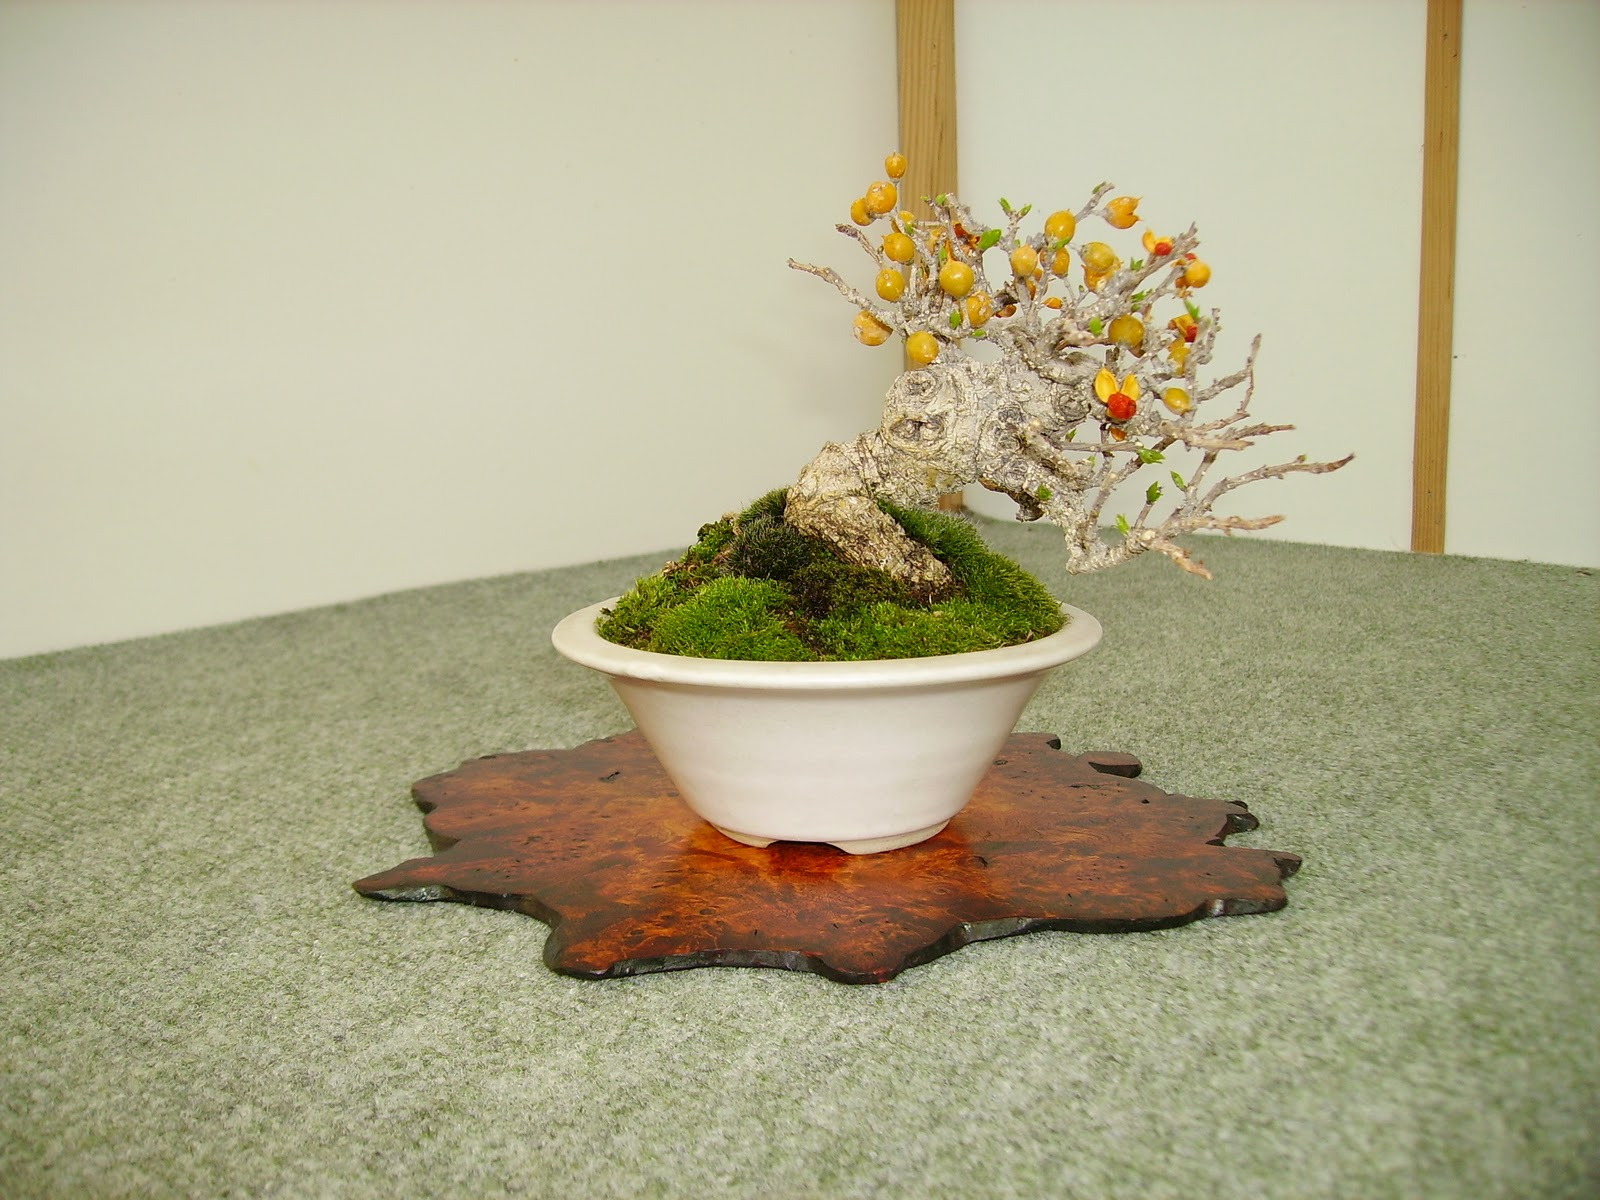 Bespoke Bonsai Stands My Trees Displayed At QuotShohin Offquot The BSA